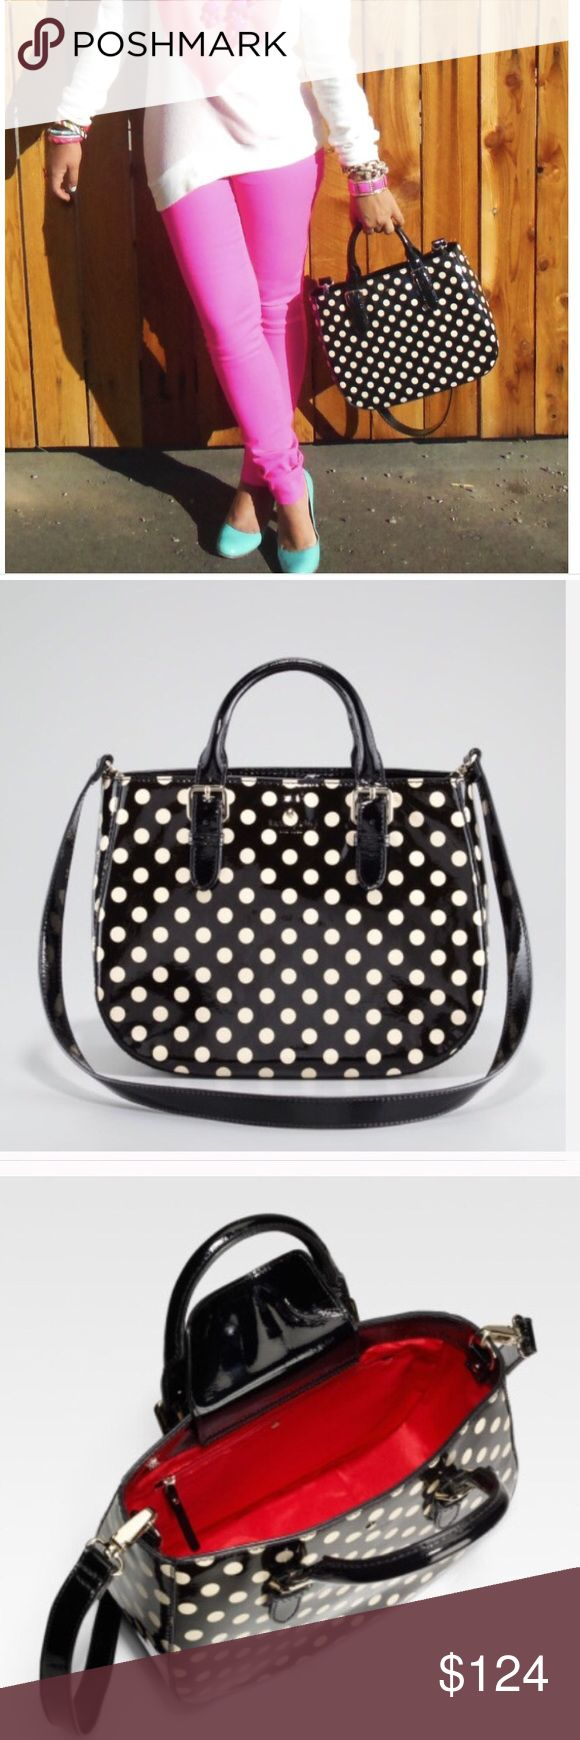 """kate spade Polkadot Carlisle Street Sylvie Bag This bag bridges old and new styles with its vintage shape in a size large enough for today's on-the-go woman. Polka-dot printed patent leather with golden hardware. Tote handles with belt-detail edges; 4"""" drop. Removable, crossbody strap; 20"""" drop. Open top with center snap-button flap. Embossed logo with signature metal spade at center. Interior, solid fabric lining; one zip pocket and two open pockets. 10 1/2""""H x 13""""W x 5""""D Used once. No wear…"""